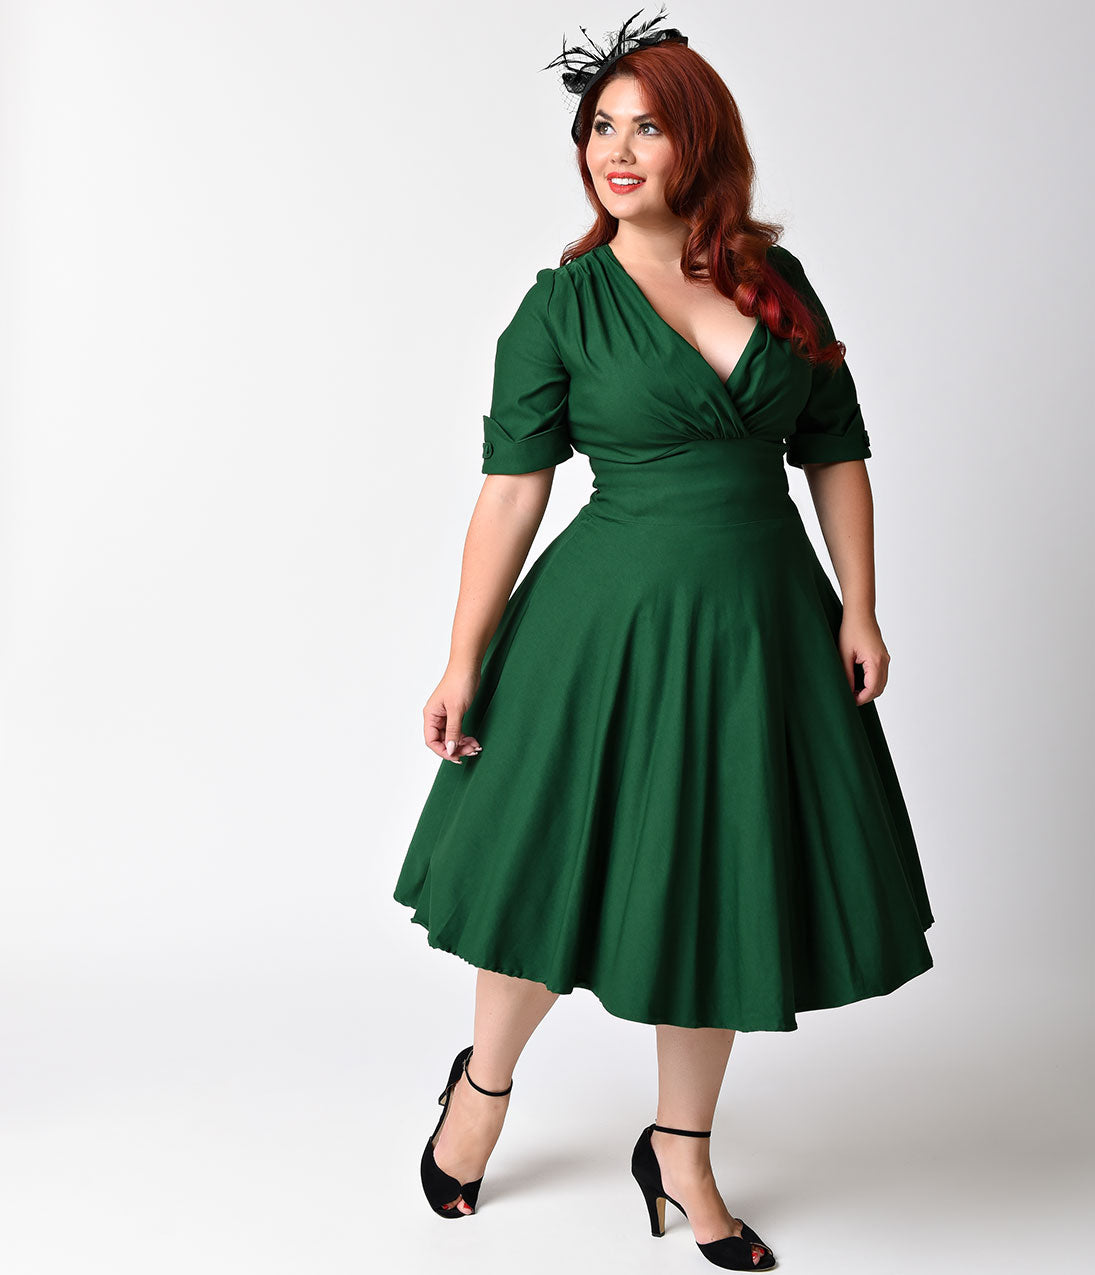 1950s Plus Size Dresses, Swing Dresses Unique Vintage Plus Size 1950S Emerald Green Delores Swing Dress With Sleeves $88.00 AT vintagedancer.com